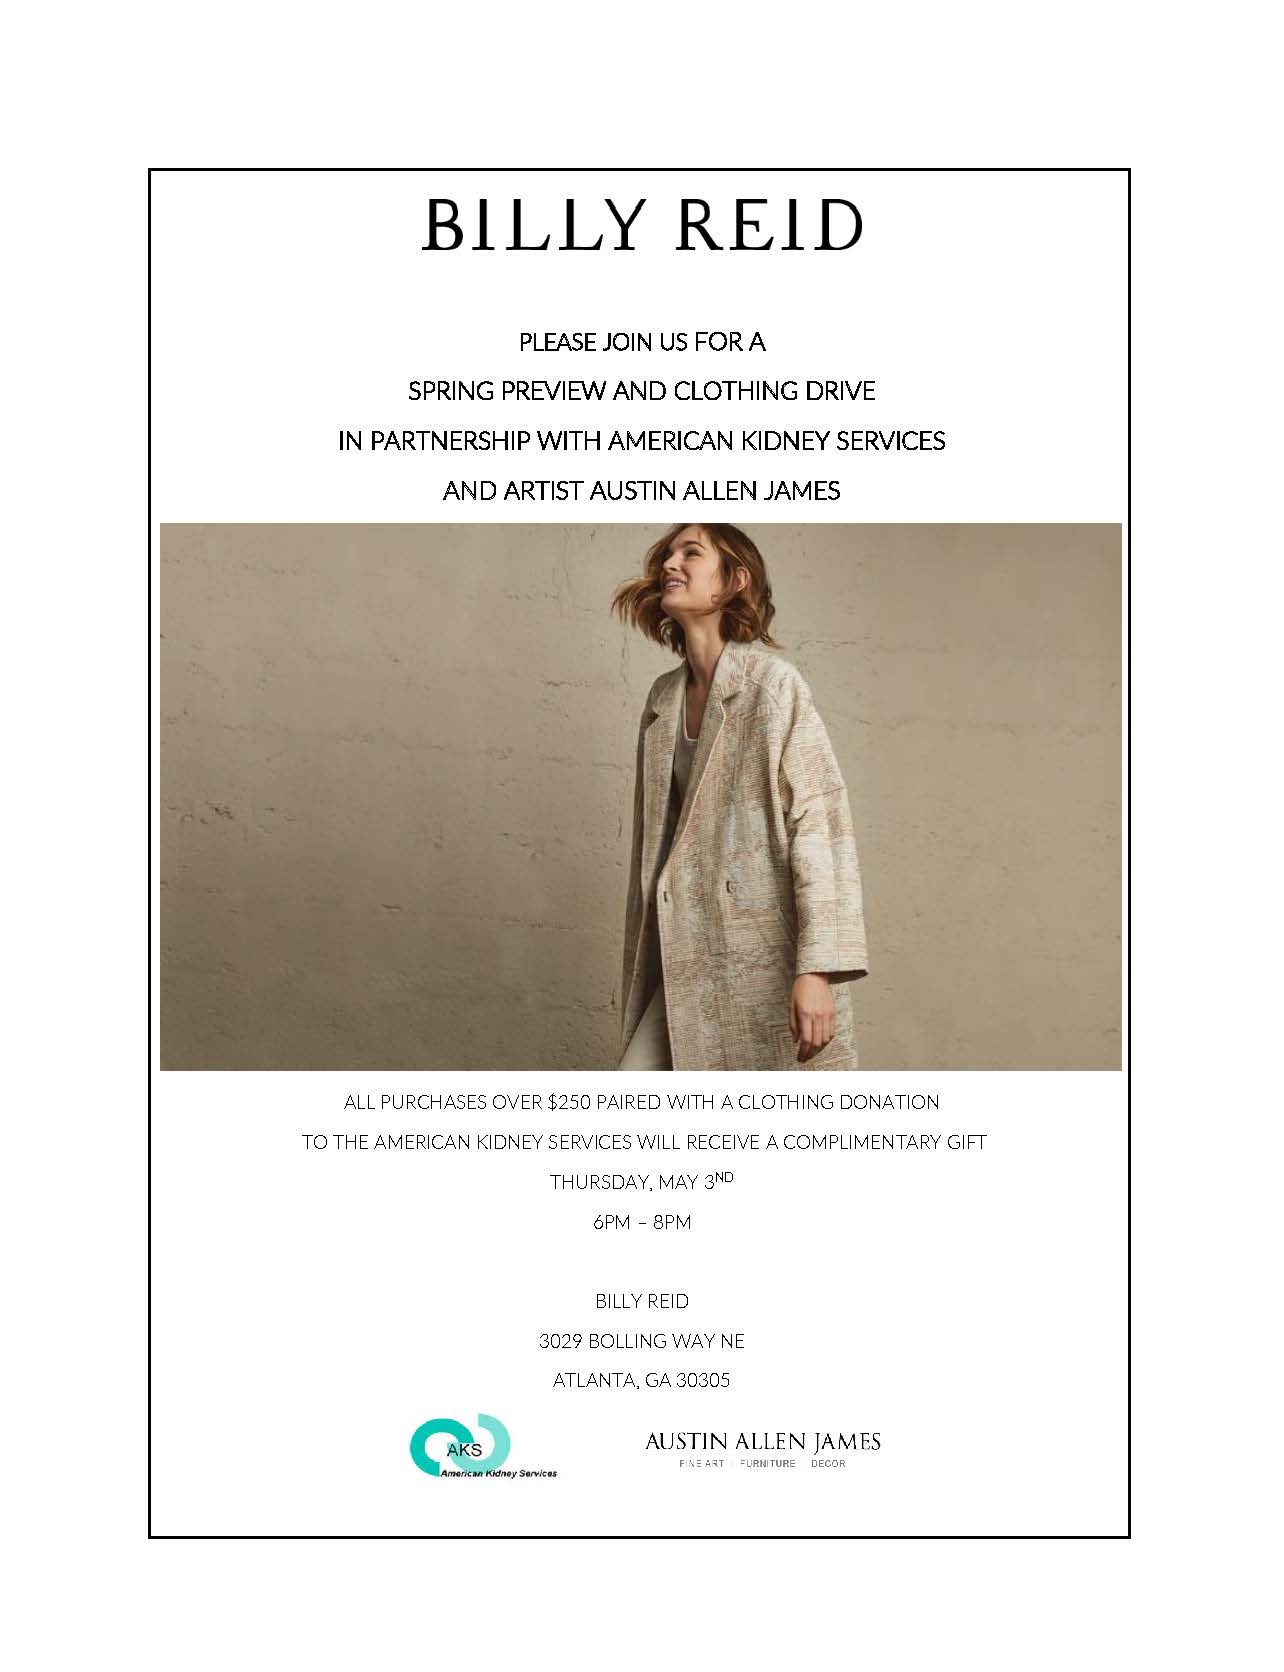 billy reid 5.3 event_Page_1.jpg